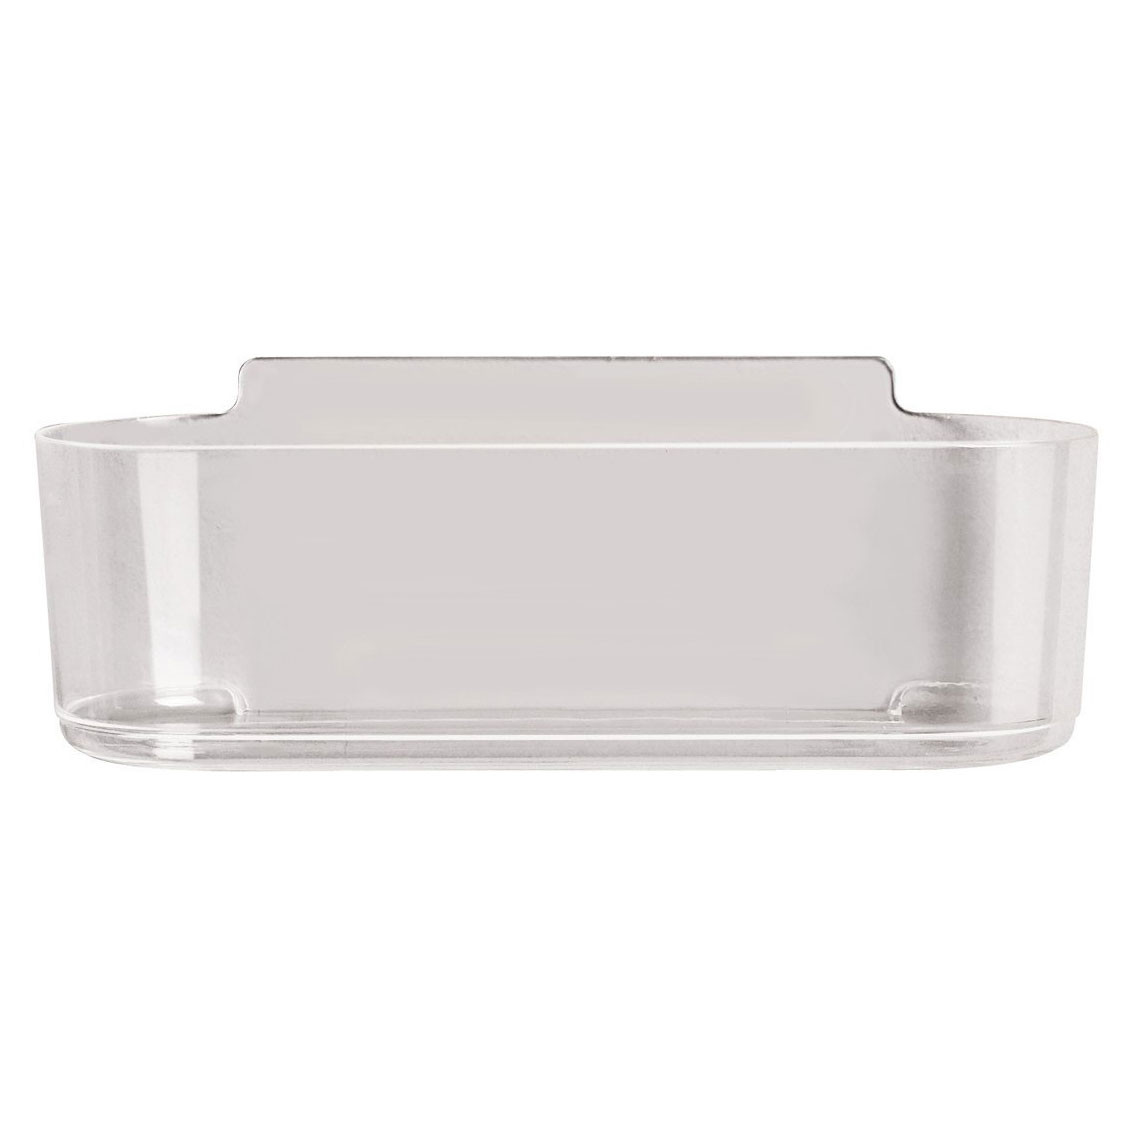 3M HOM-15 Command Organizer Caddy Large Clear (051141943169) [1]